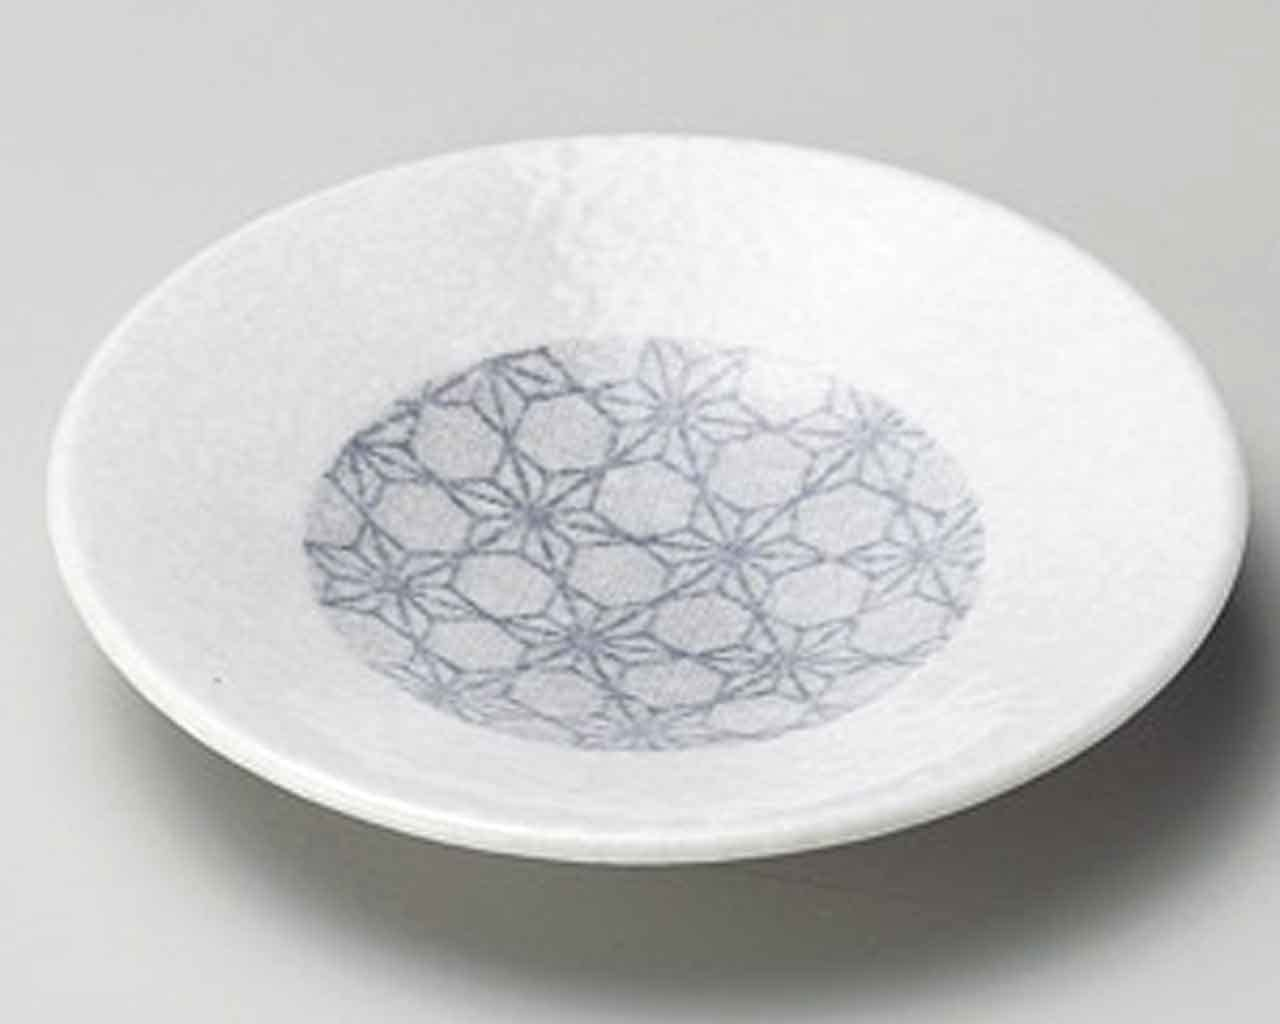 Wabutae 5.7inch Set of 5 Small Plates White porcelain Made in Japan